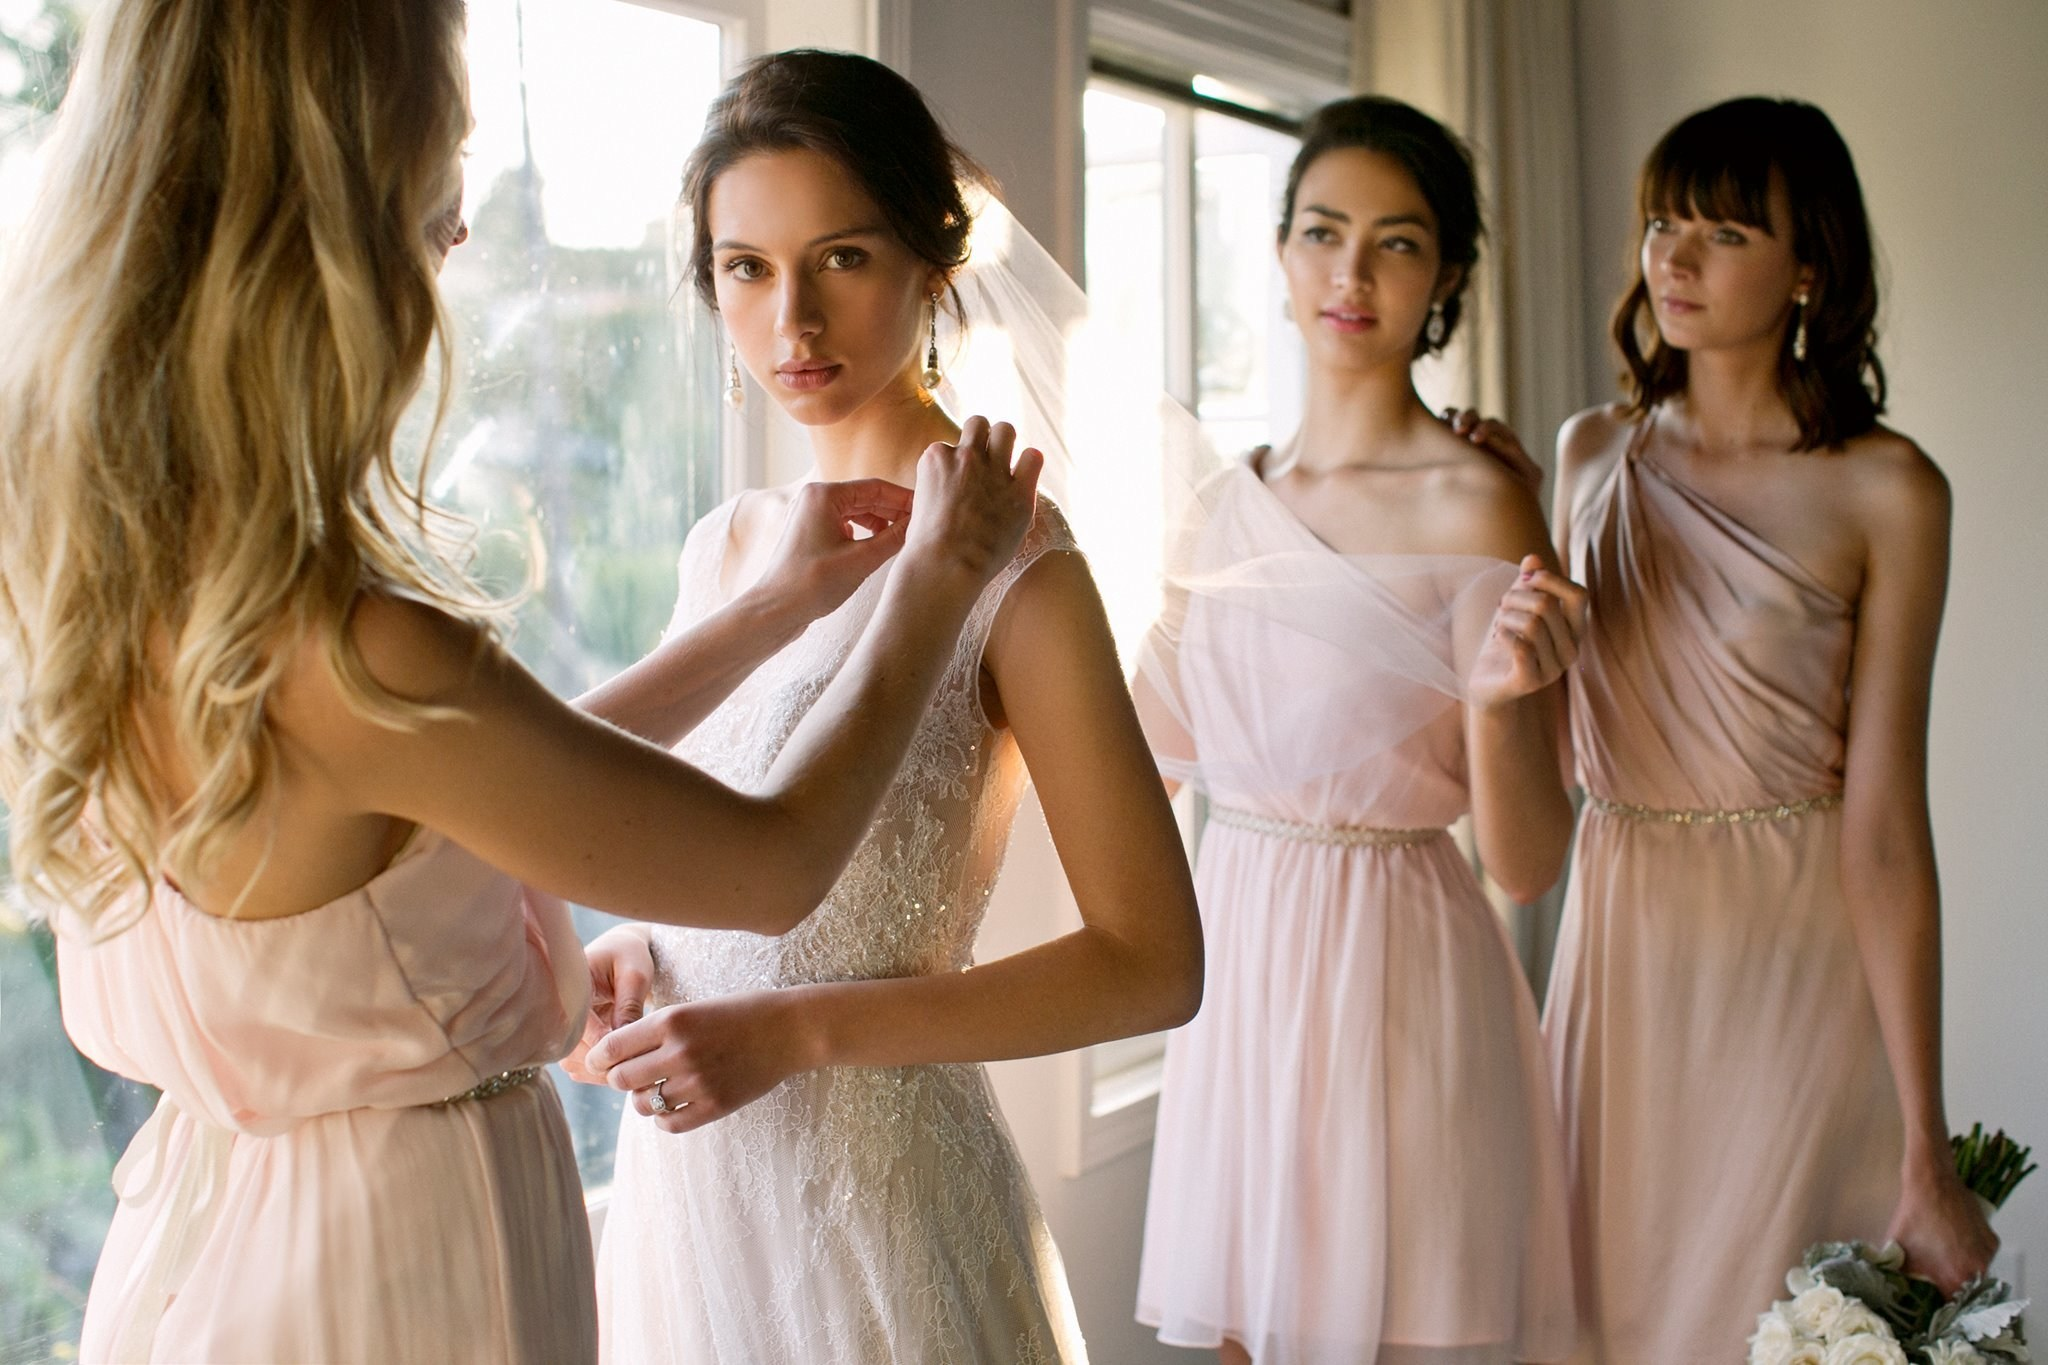 Vow to be chic wiles magazine launched in 2014 vow to be chic draws national attention because it taps the emotions of the 74 of women who serve as bridesmaids ombrellifo Image collections